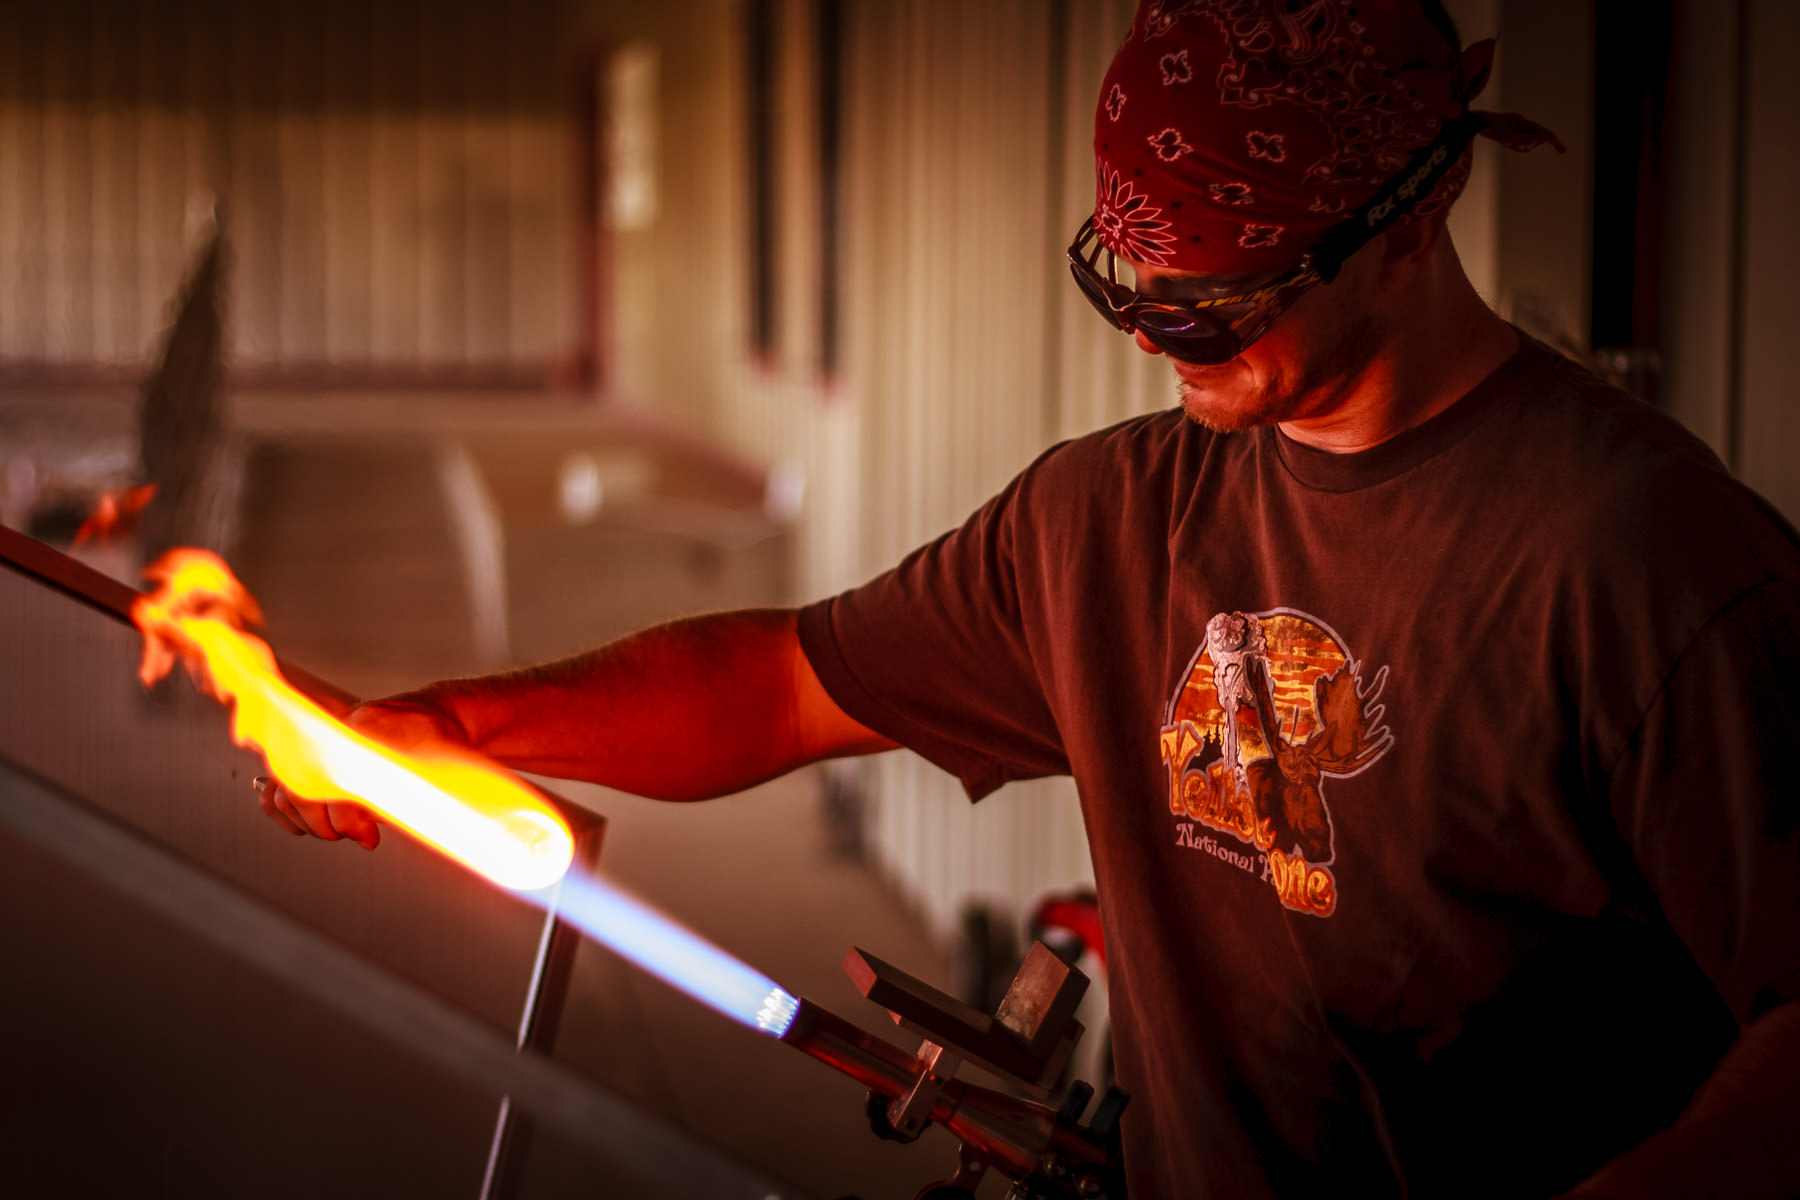 An artisan shapes molten glass at the Vetro Glass Studio in Grapevine, Texas.